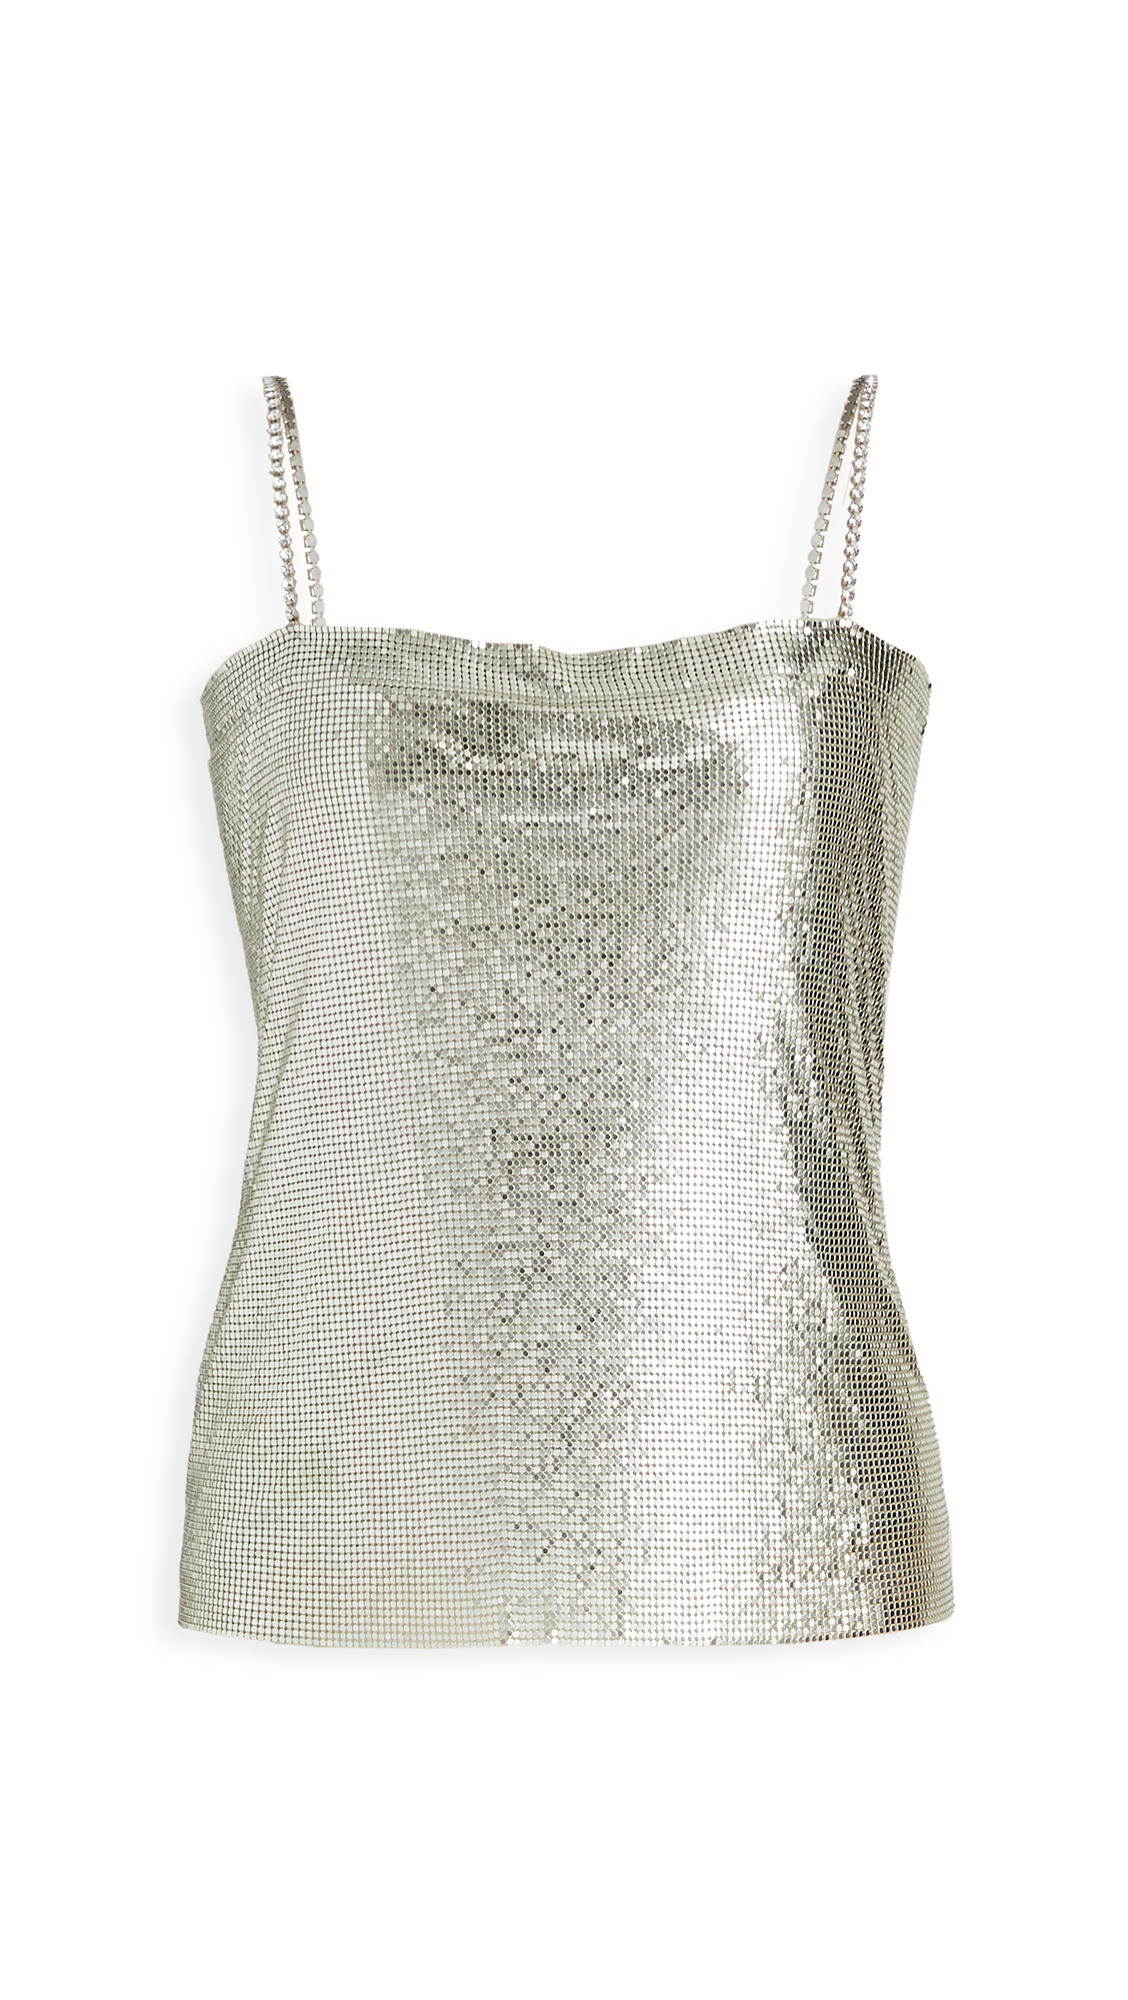 Nafsika Skourti Metal Mesh Top - 50% Off Sale